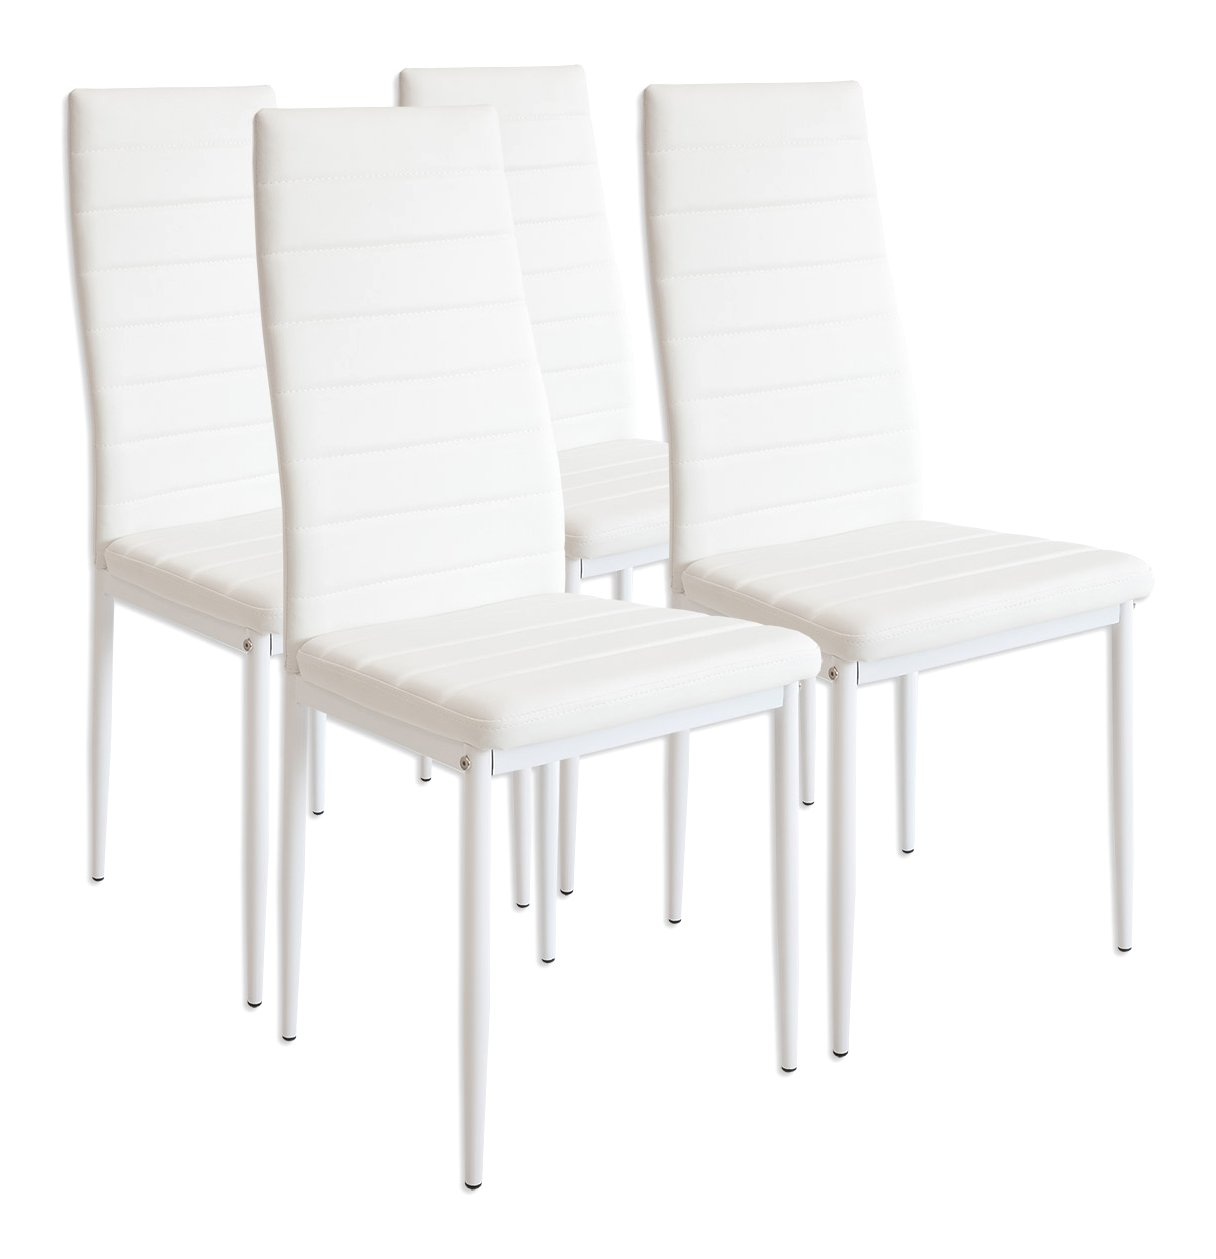 Interesting albatros set di sedie milano bianco with sedie for Sedie design amazon